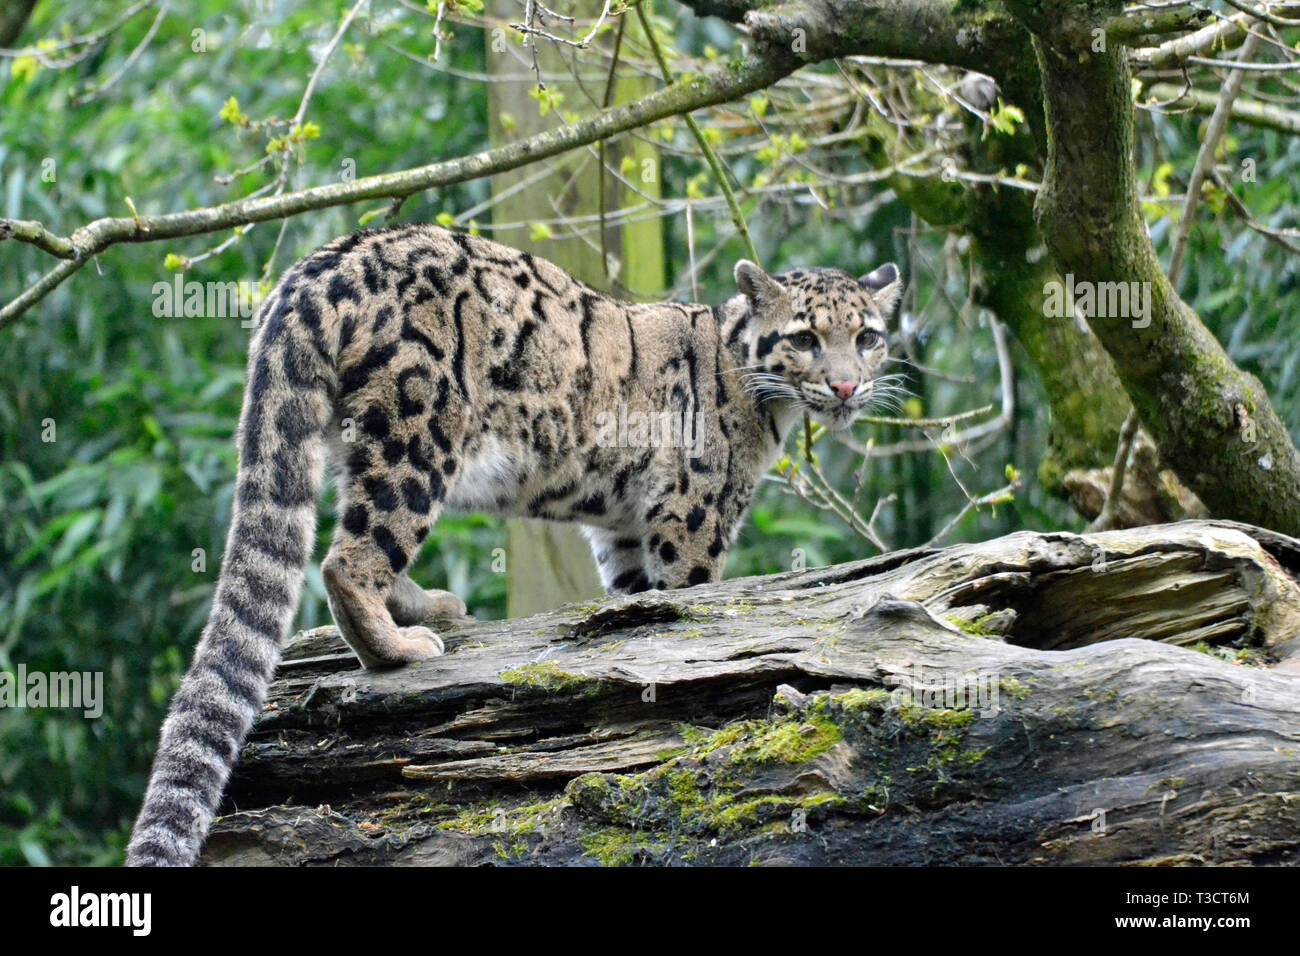 Amur Leopard at Cotswold Wildlife Park, Burford, Oxfordshire, UK Stock Photo